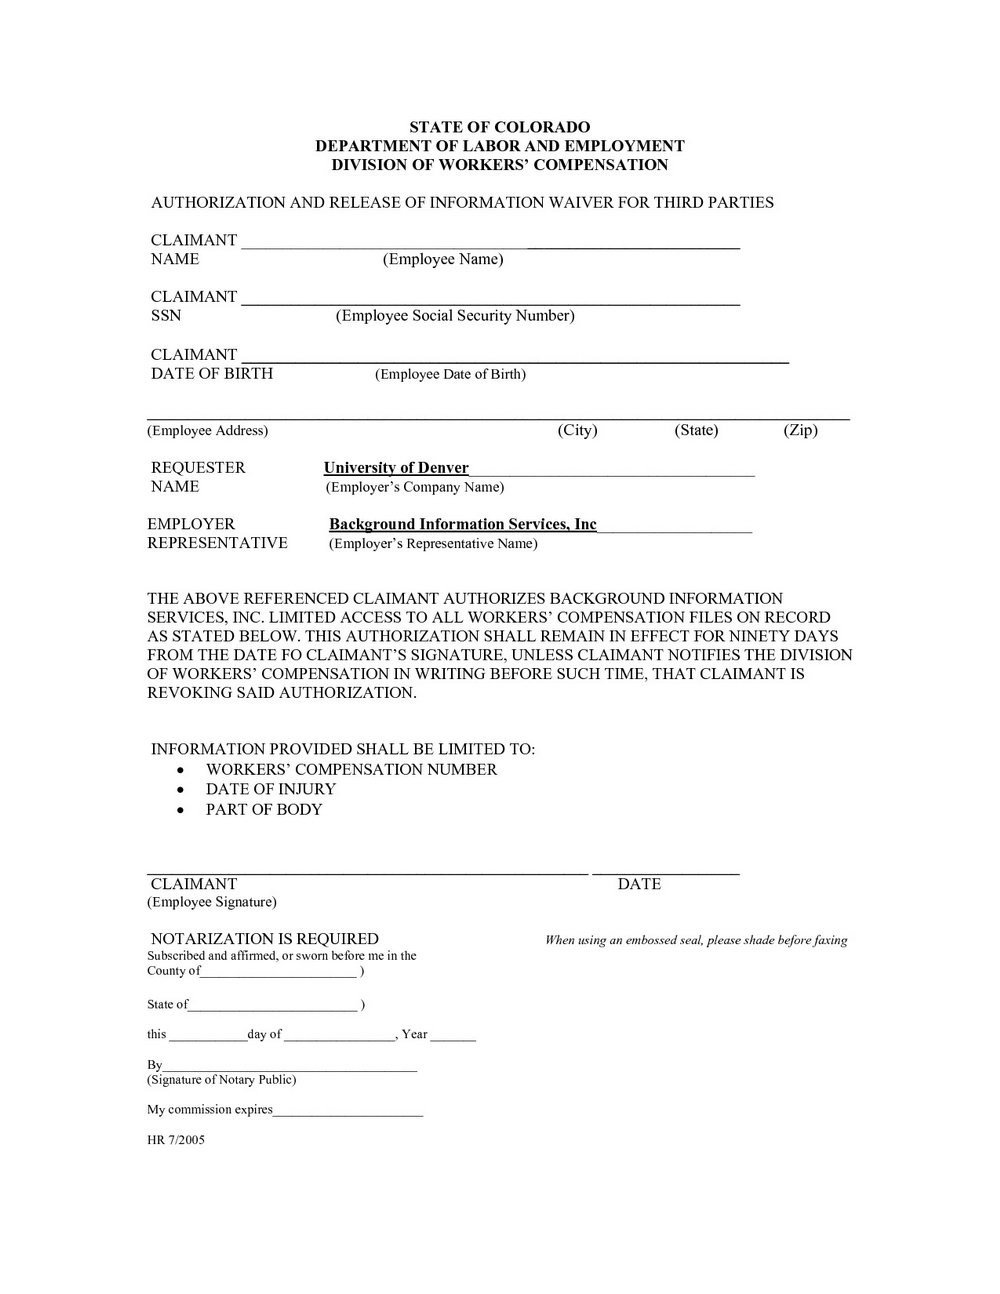 Workers Comp Exemption form Michigan Workmans P Waiver form forms 7055